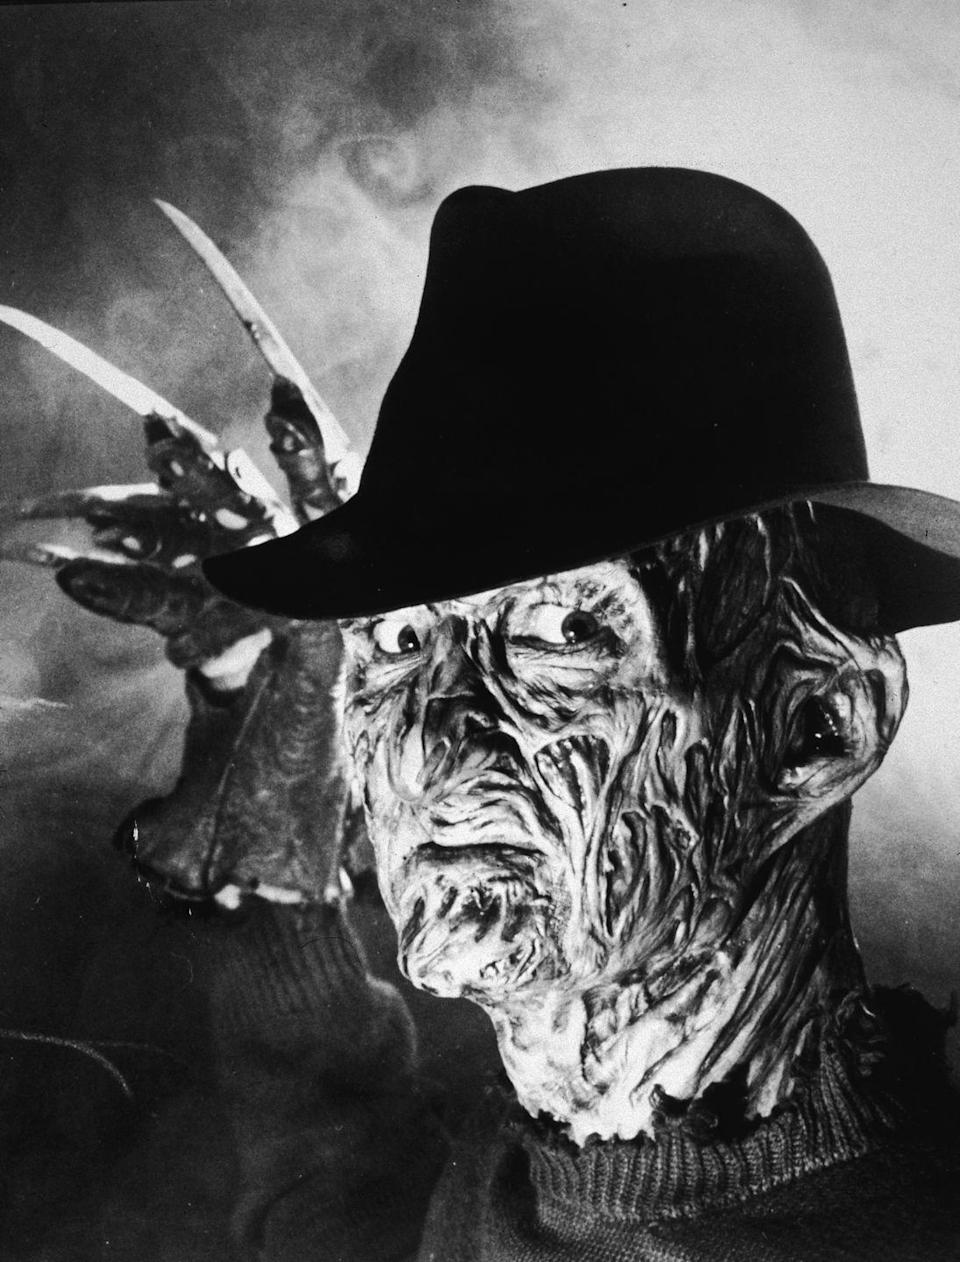 """<p>Wes Craven's <em>The Nightmare on Elm Street </em>was released on November 9, 1984. The horror film introduced the masses to one of Halloween's most popular villains, Freddie Krueger<span class=""""redactor-invisible-space"""">. </span></p>"""